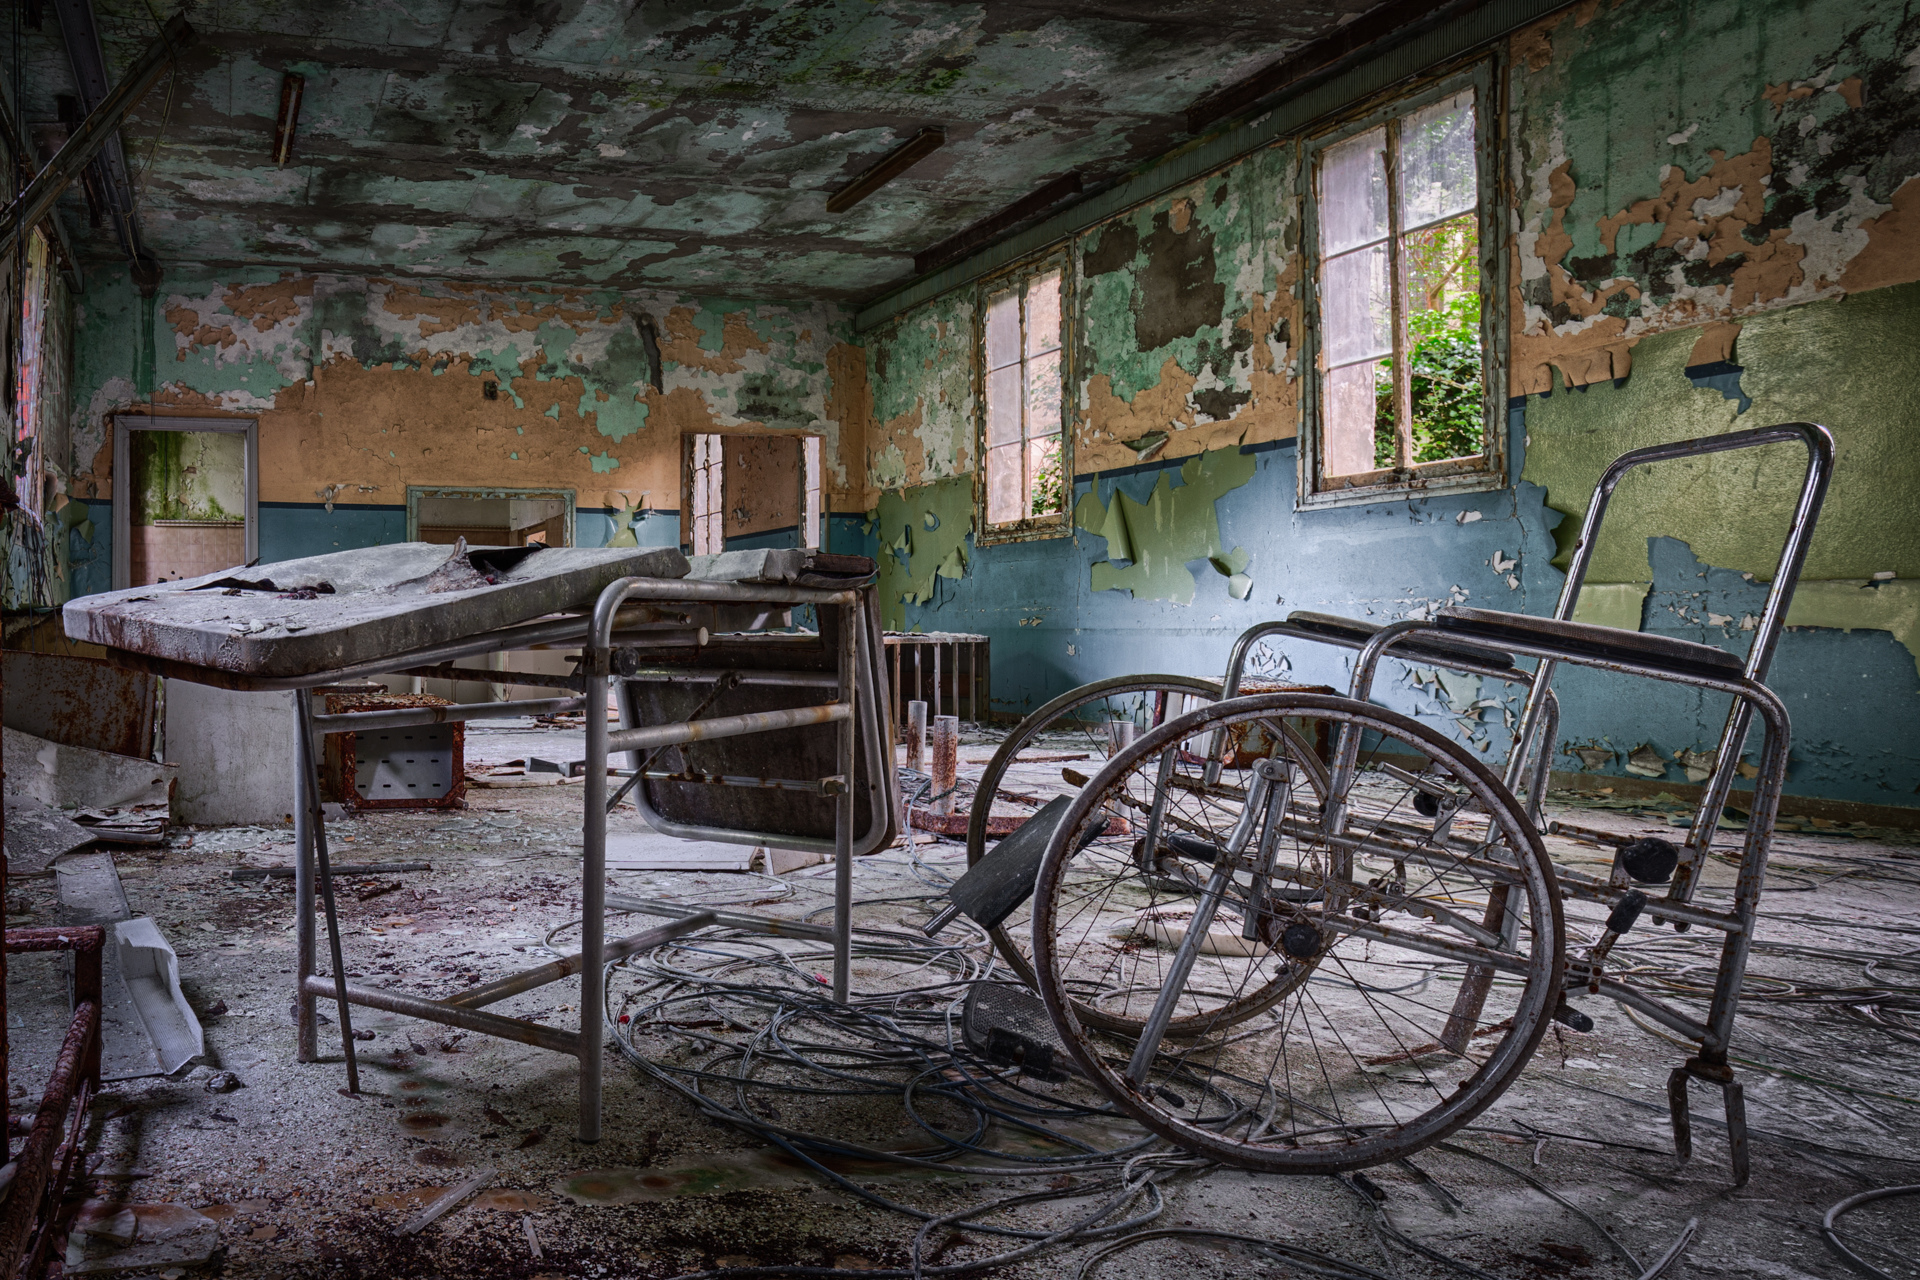 Urban Exploration - Manicomio Di Anime - Treatment Room